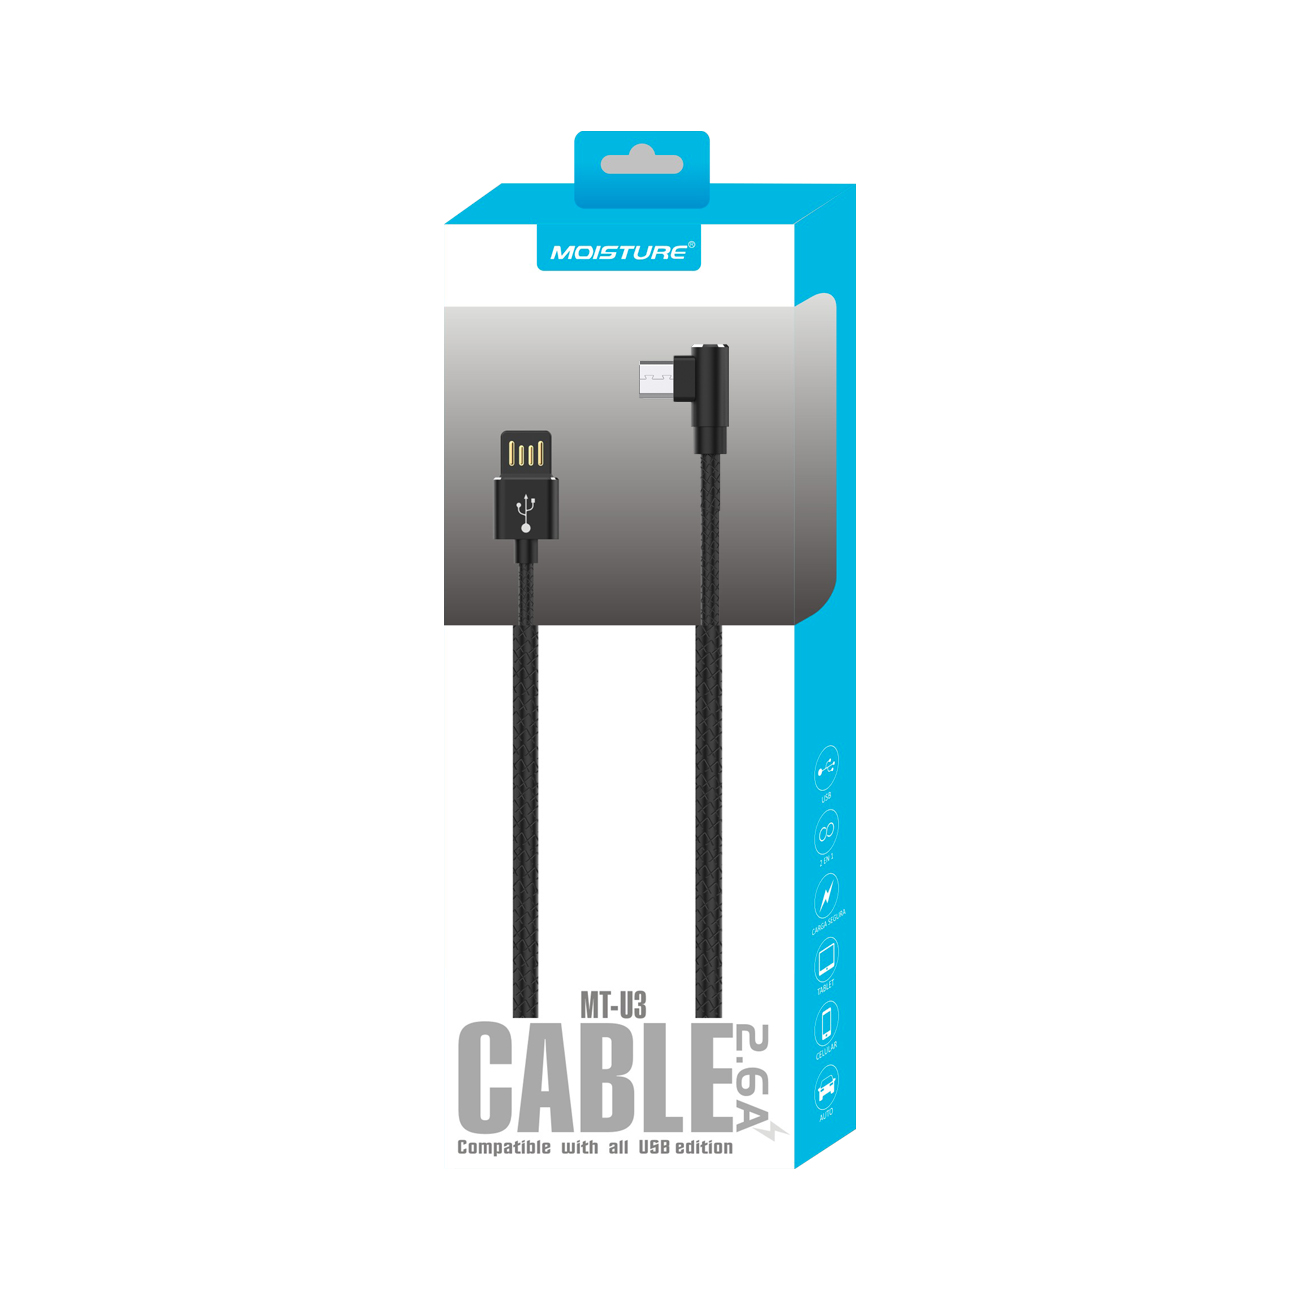 Moisture 2.6A Premium Full Steel Data Cable In Black